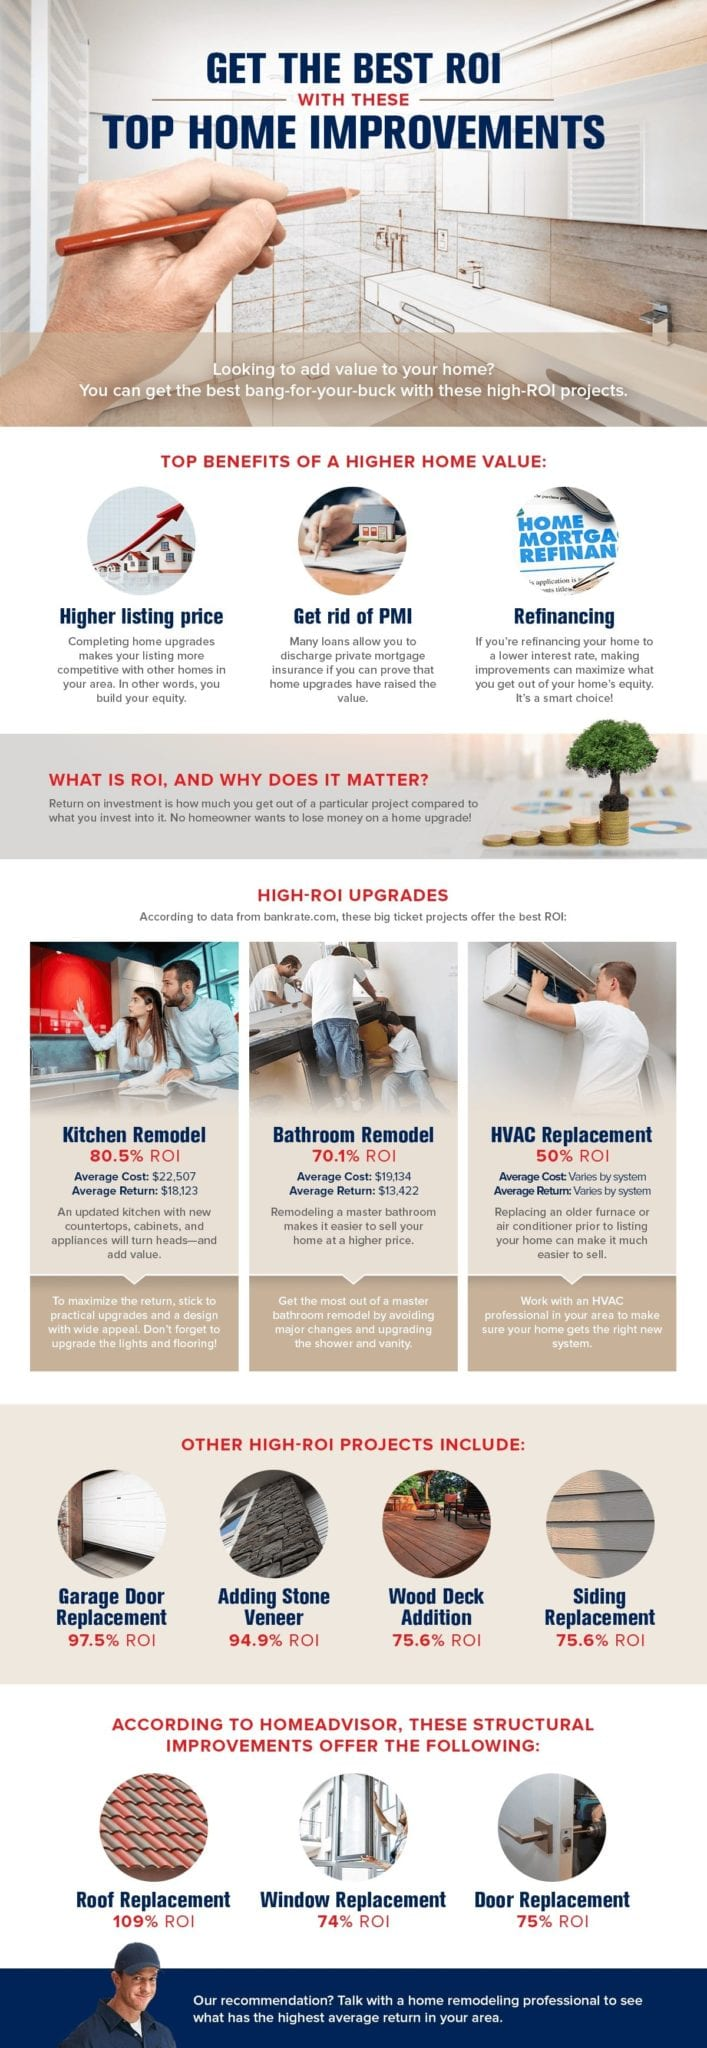 Best ROI Home Improvement Projects